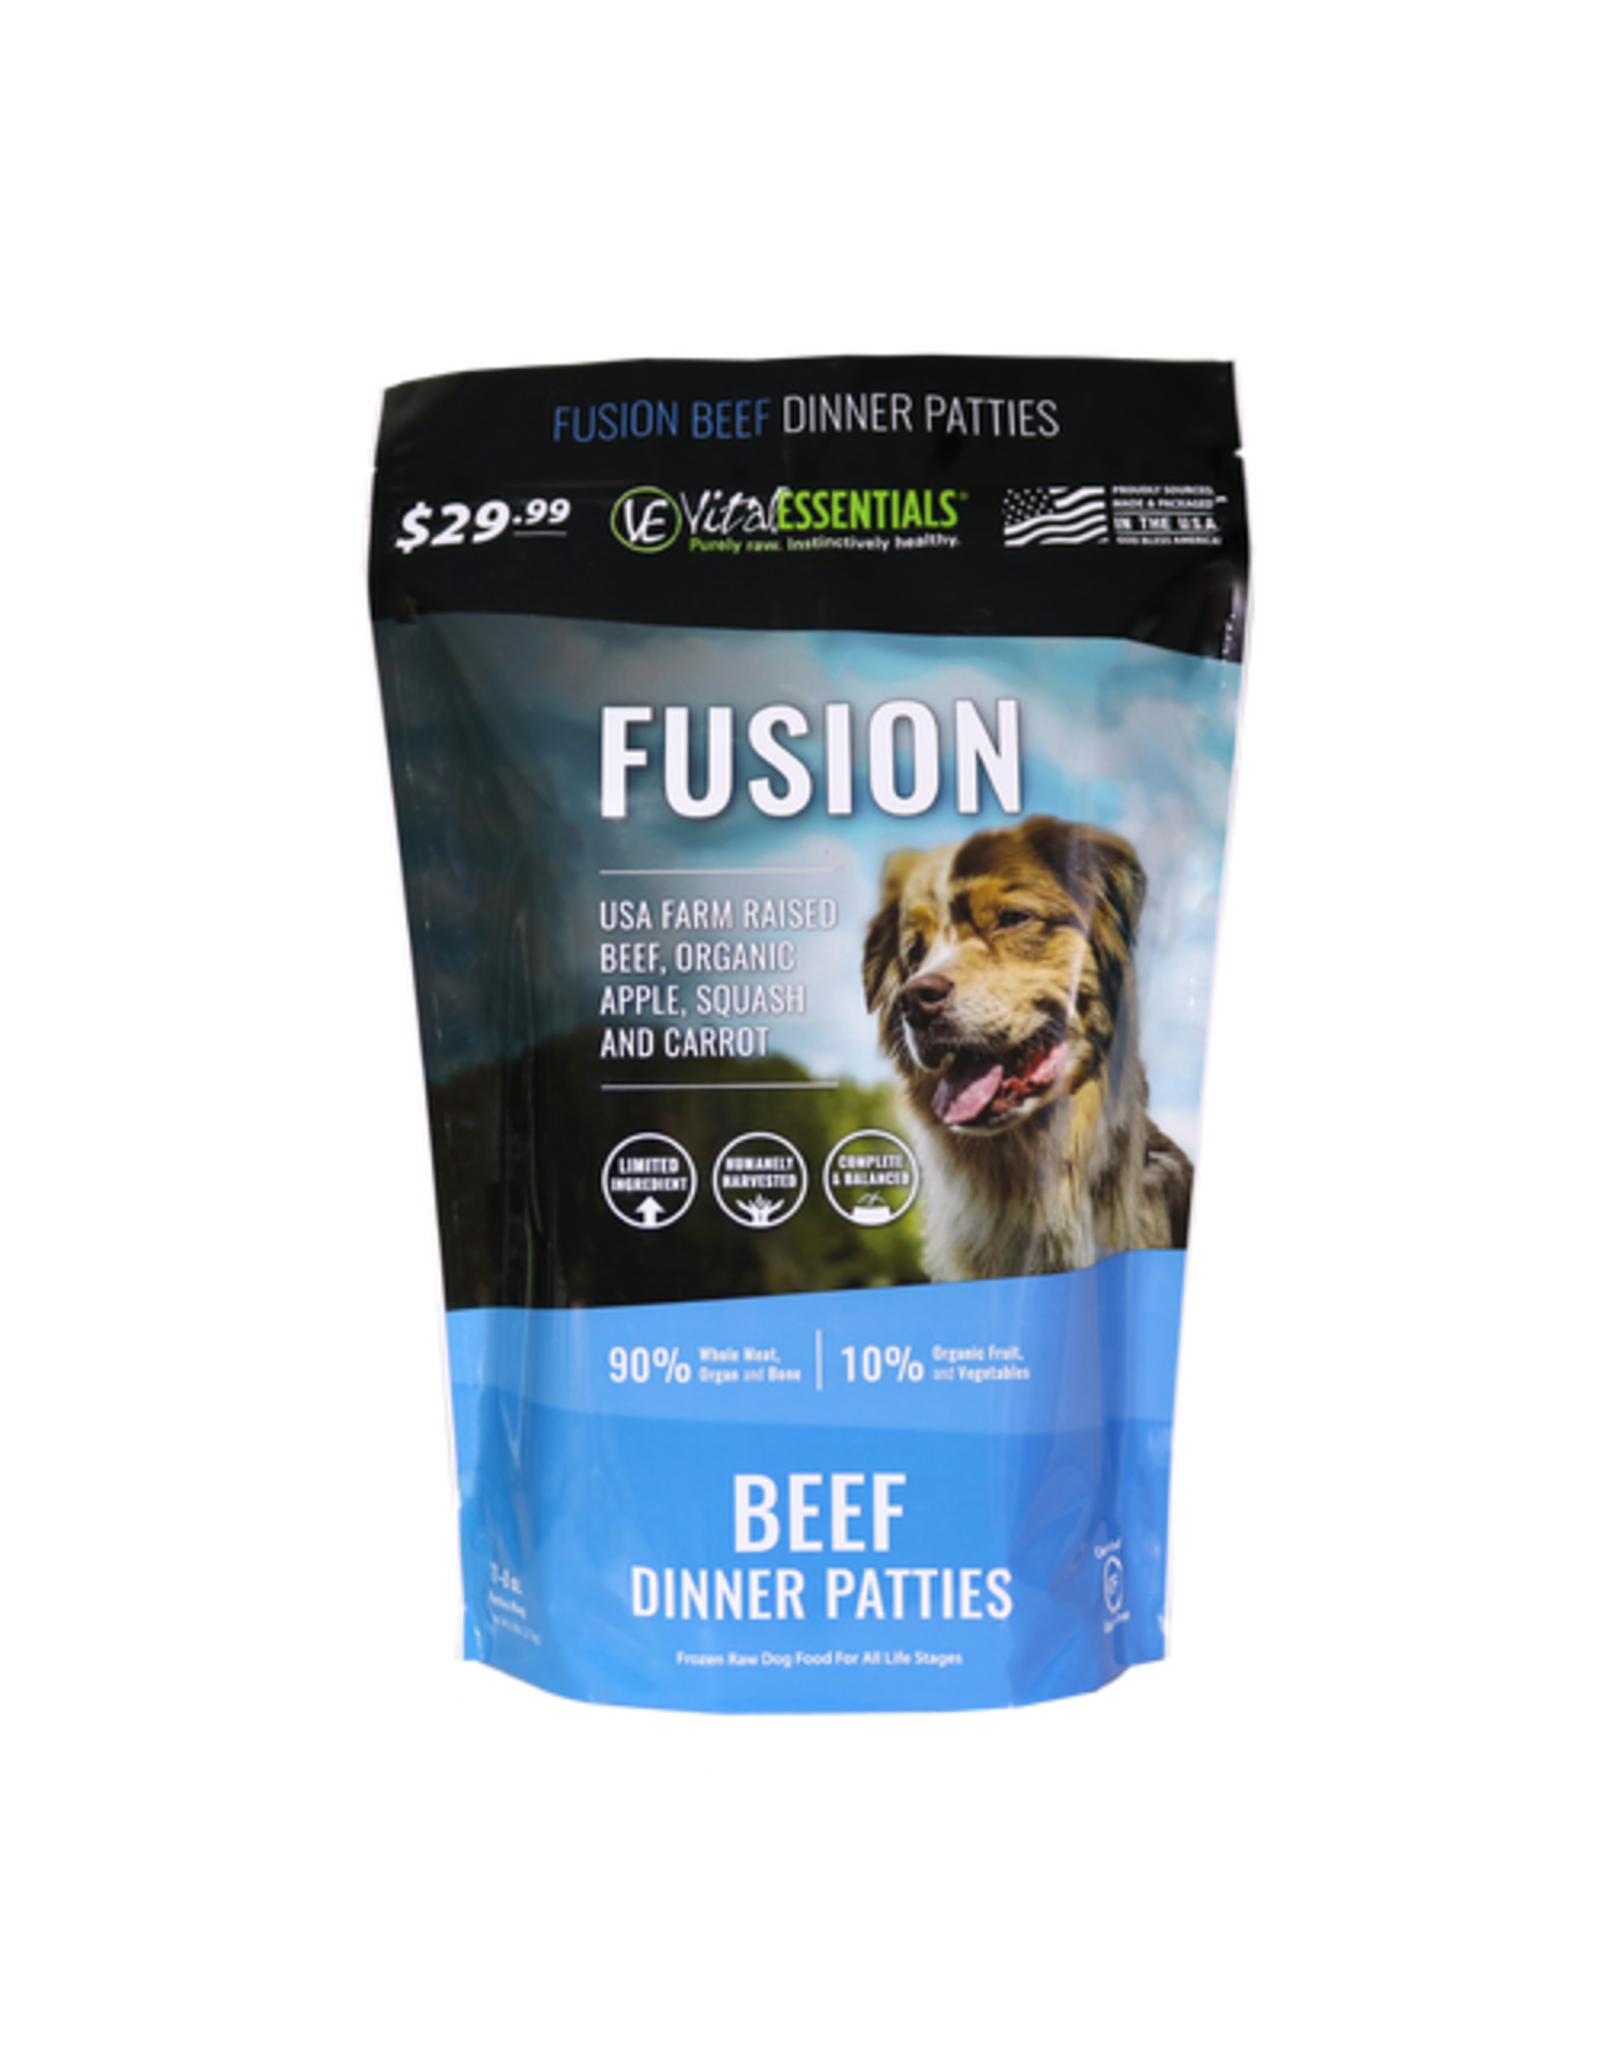 Fusion - Vital Essentials VITAL ESSENTIALS FUSION RAW FROZEN BEEF DINNER PATTIES 6LB